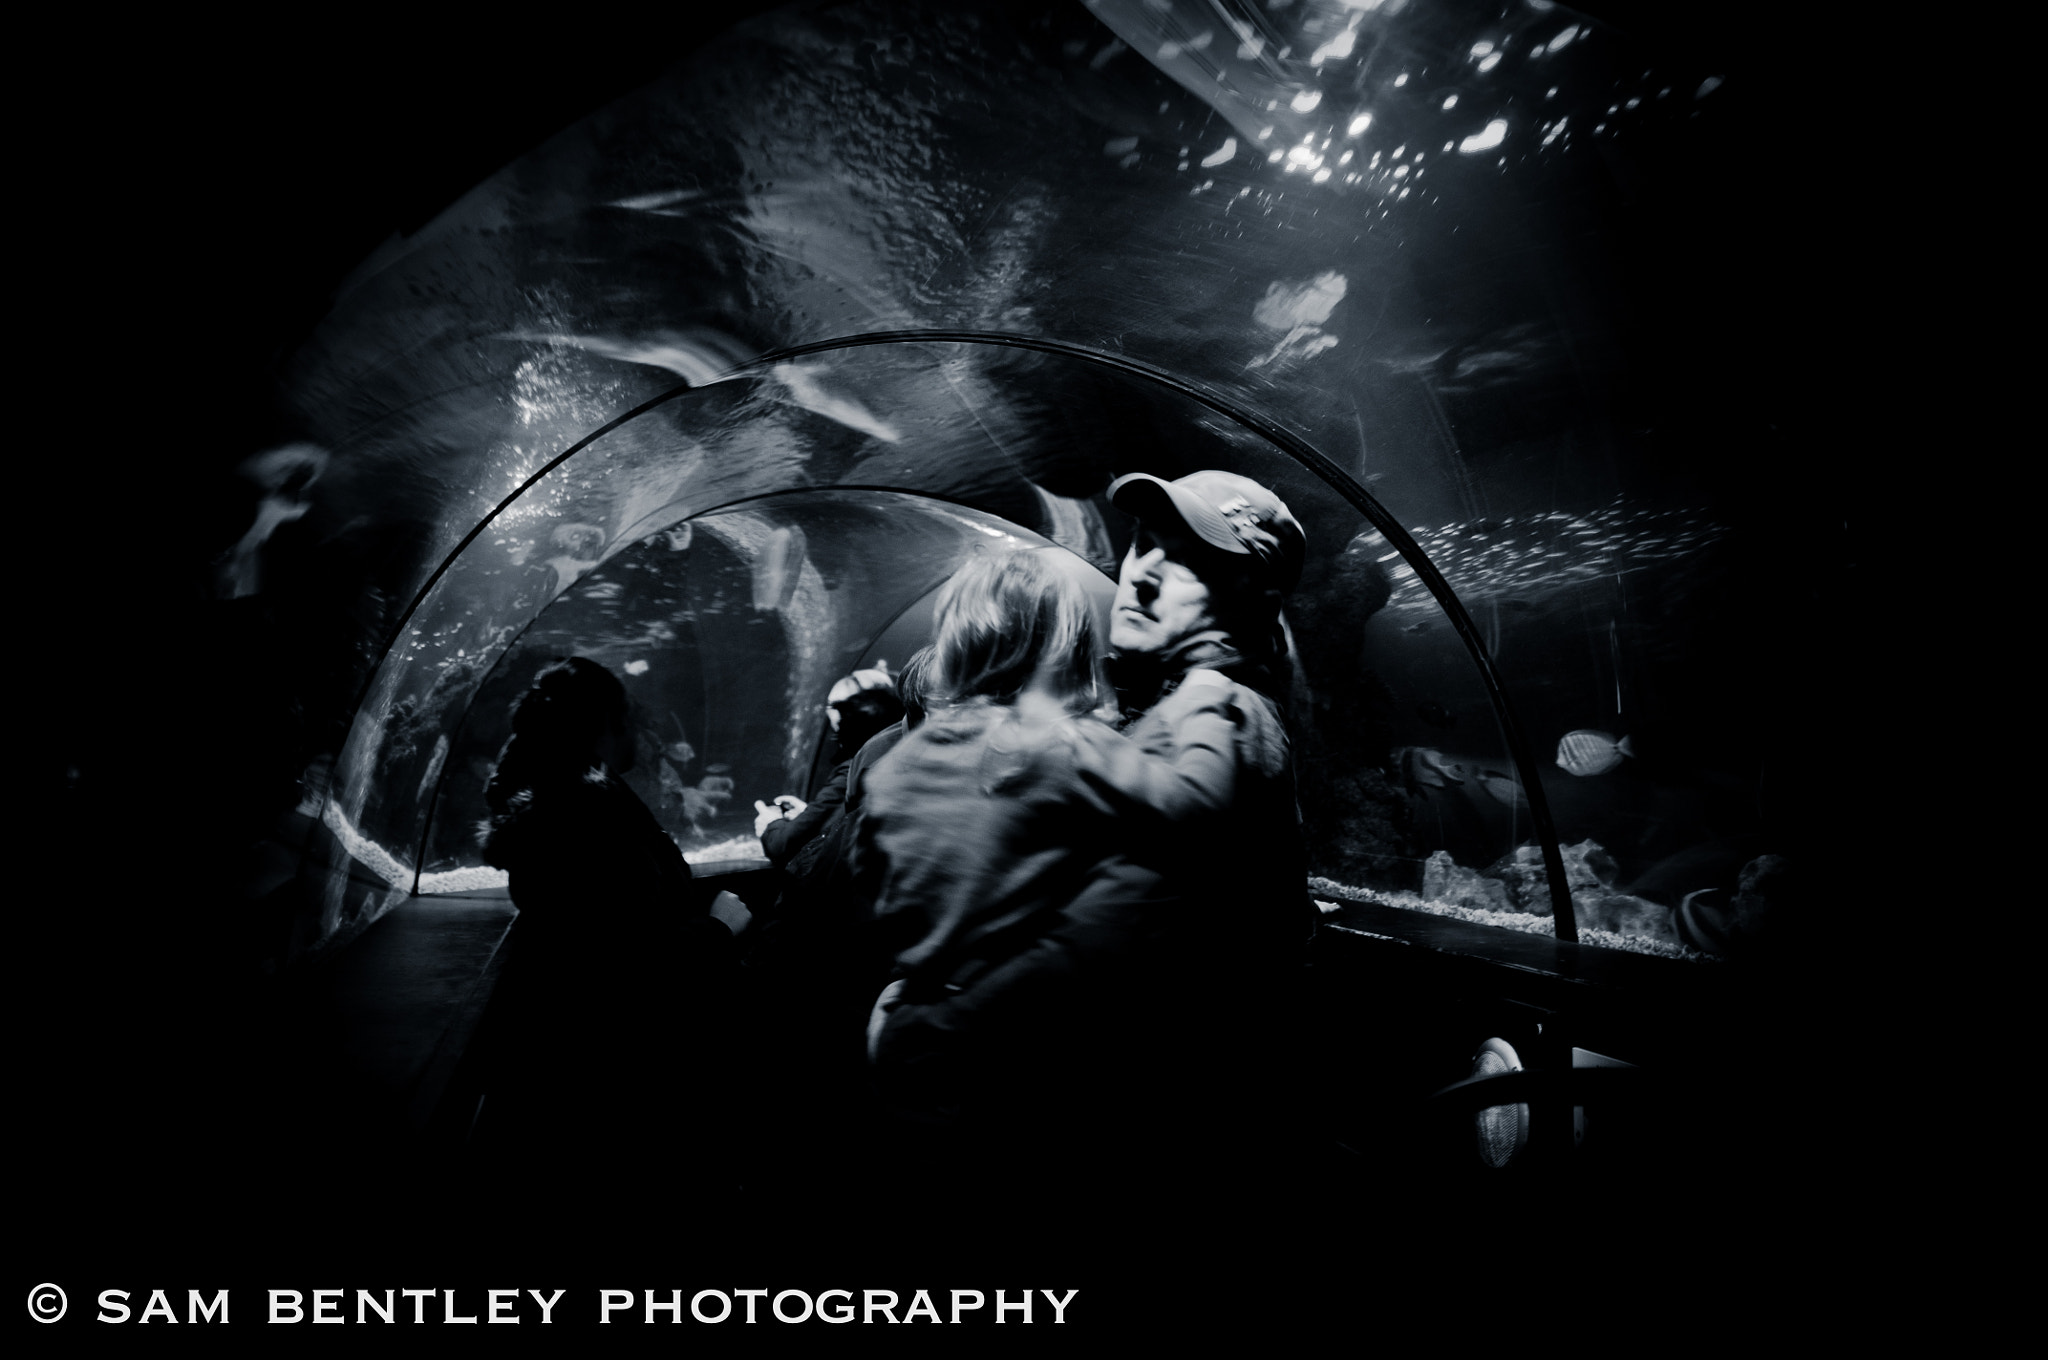 Photograph Protection From Sharks by Sam Bentley on 500px